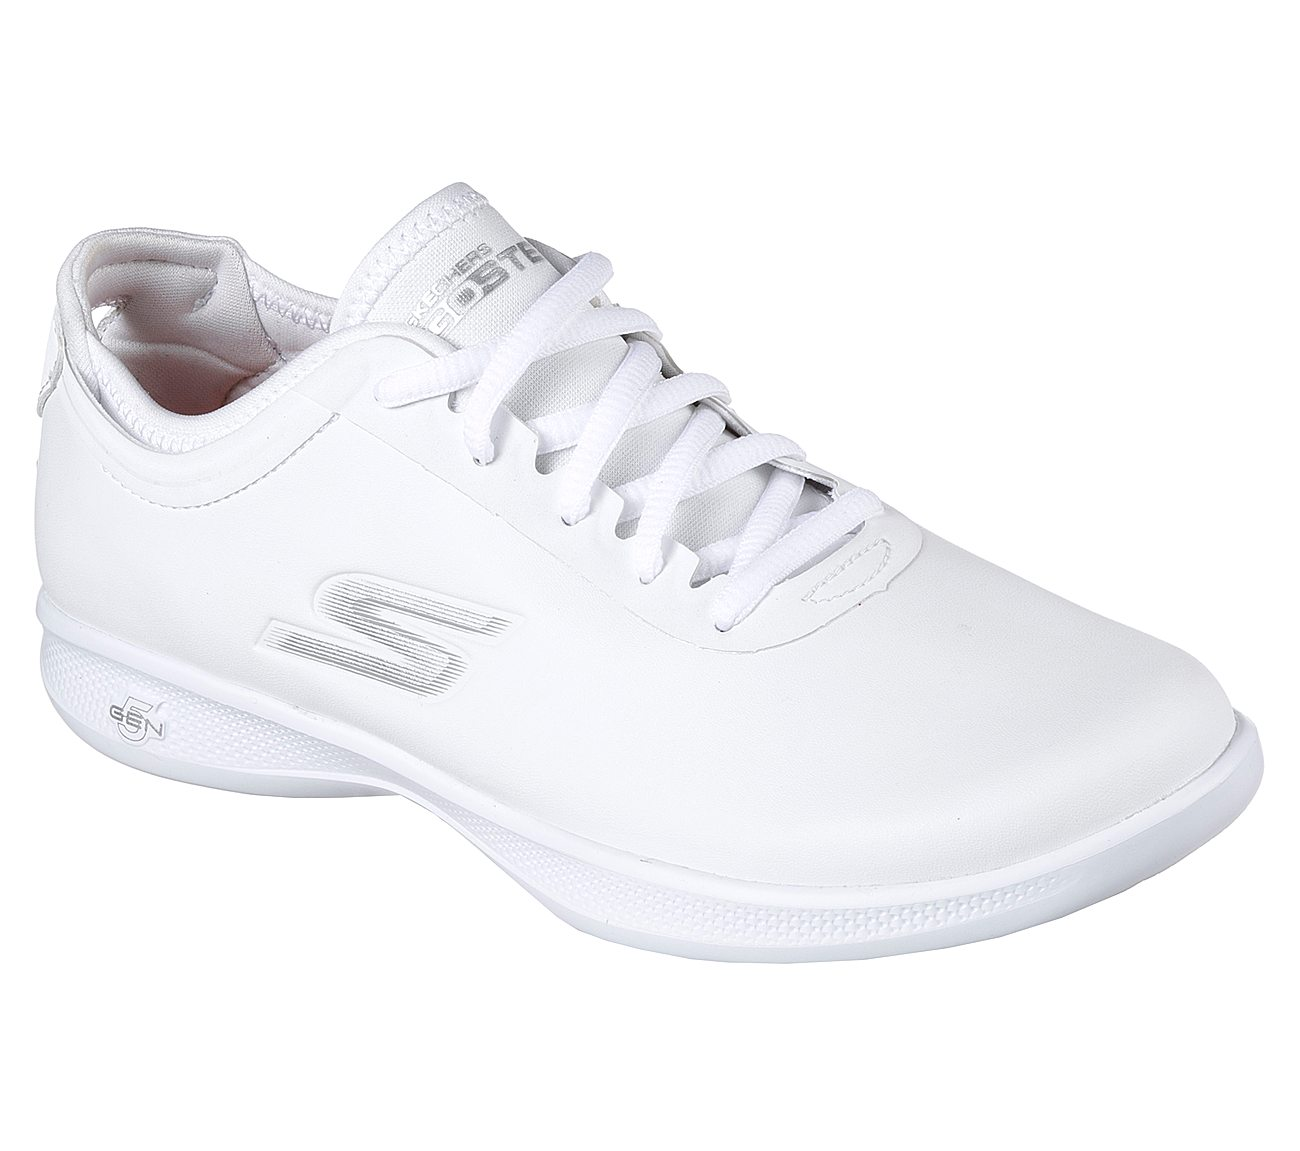 skechers all white shoes